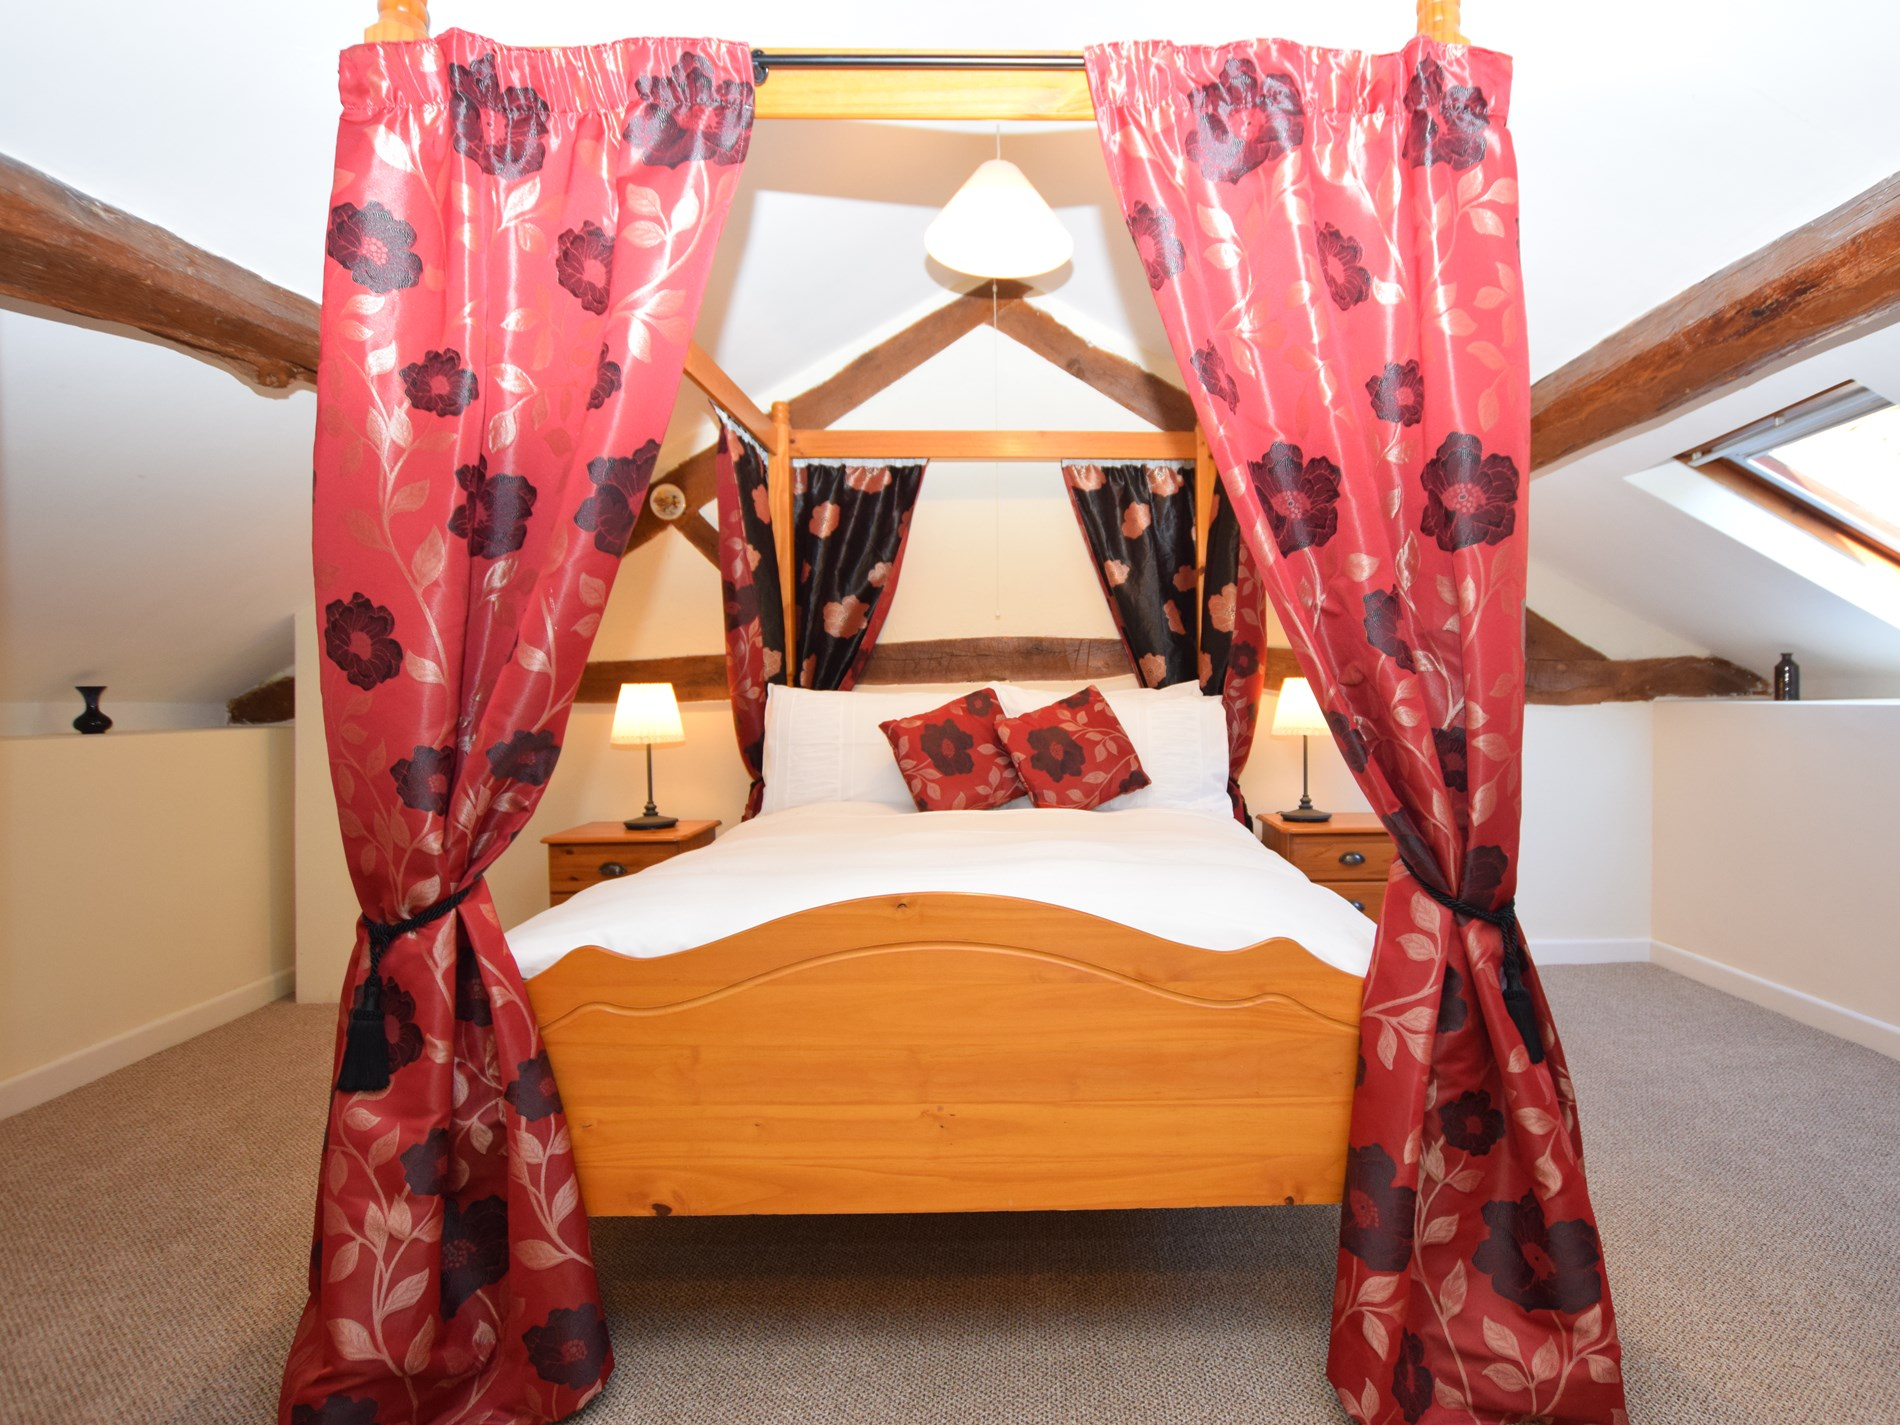 Relax after a busy day exploring in your own four poster bed